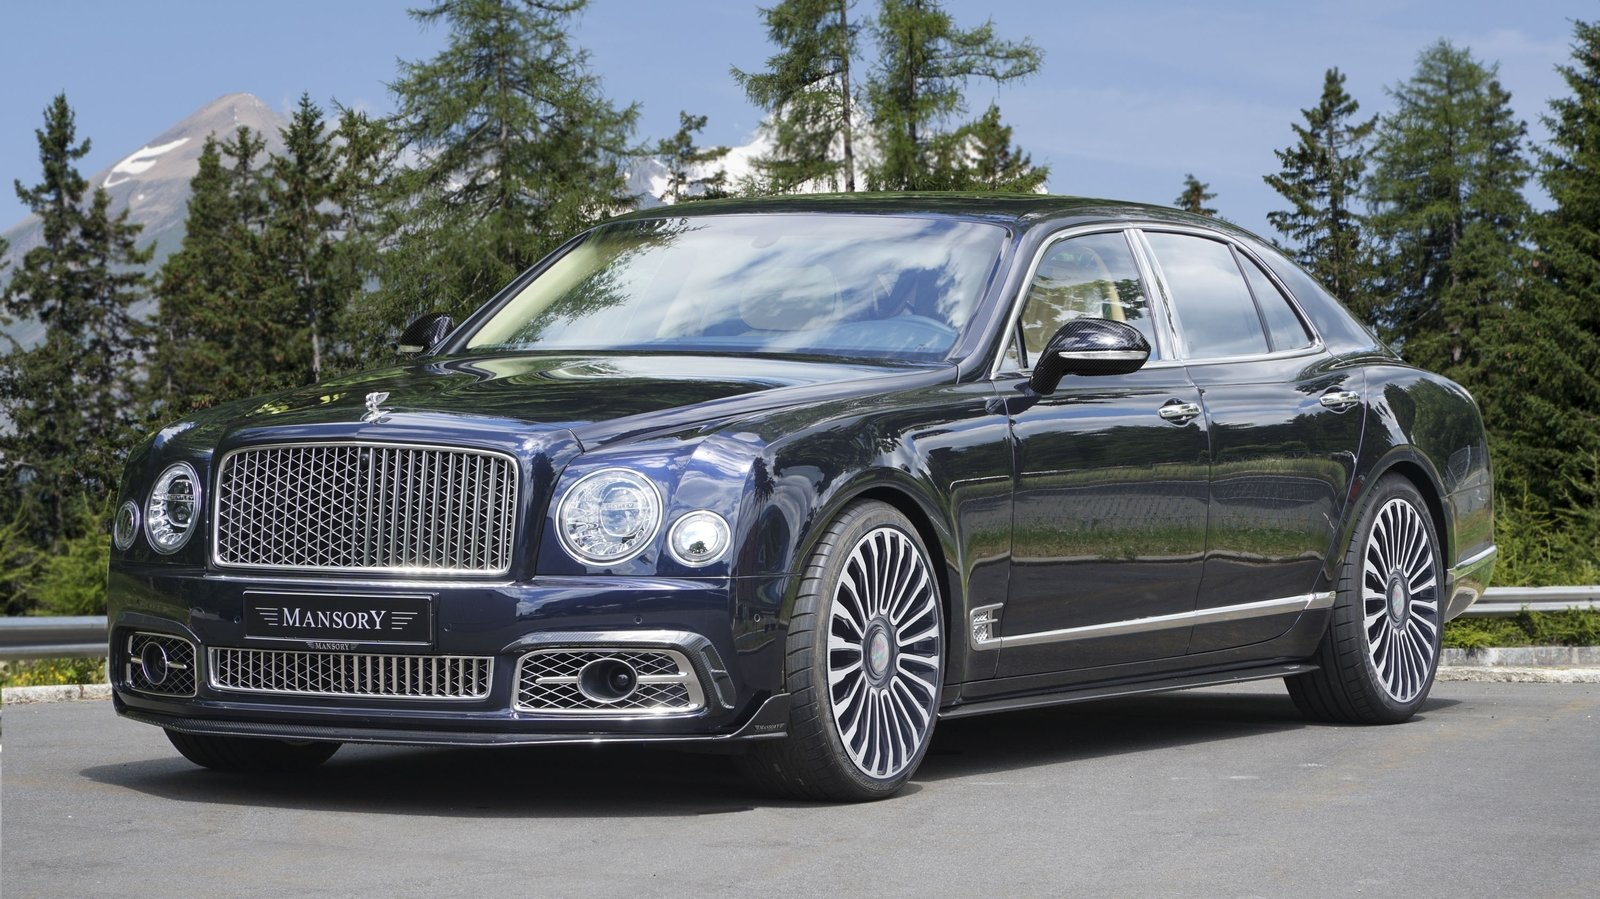 The Bentley Mulsanne S Very Limited: 2017 Bentley Mulsanne By Mansory